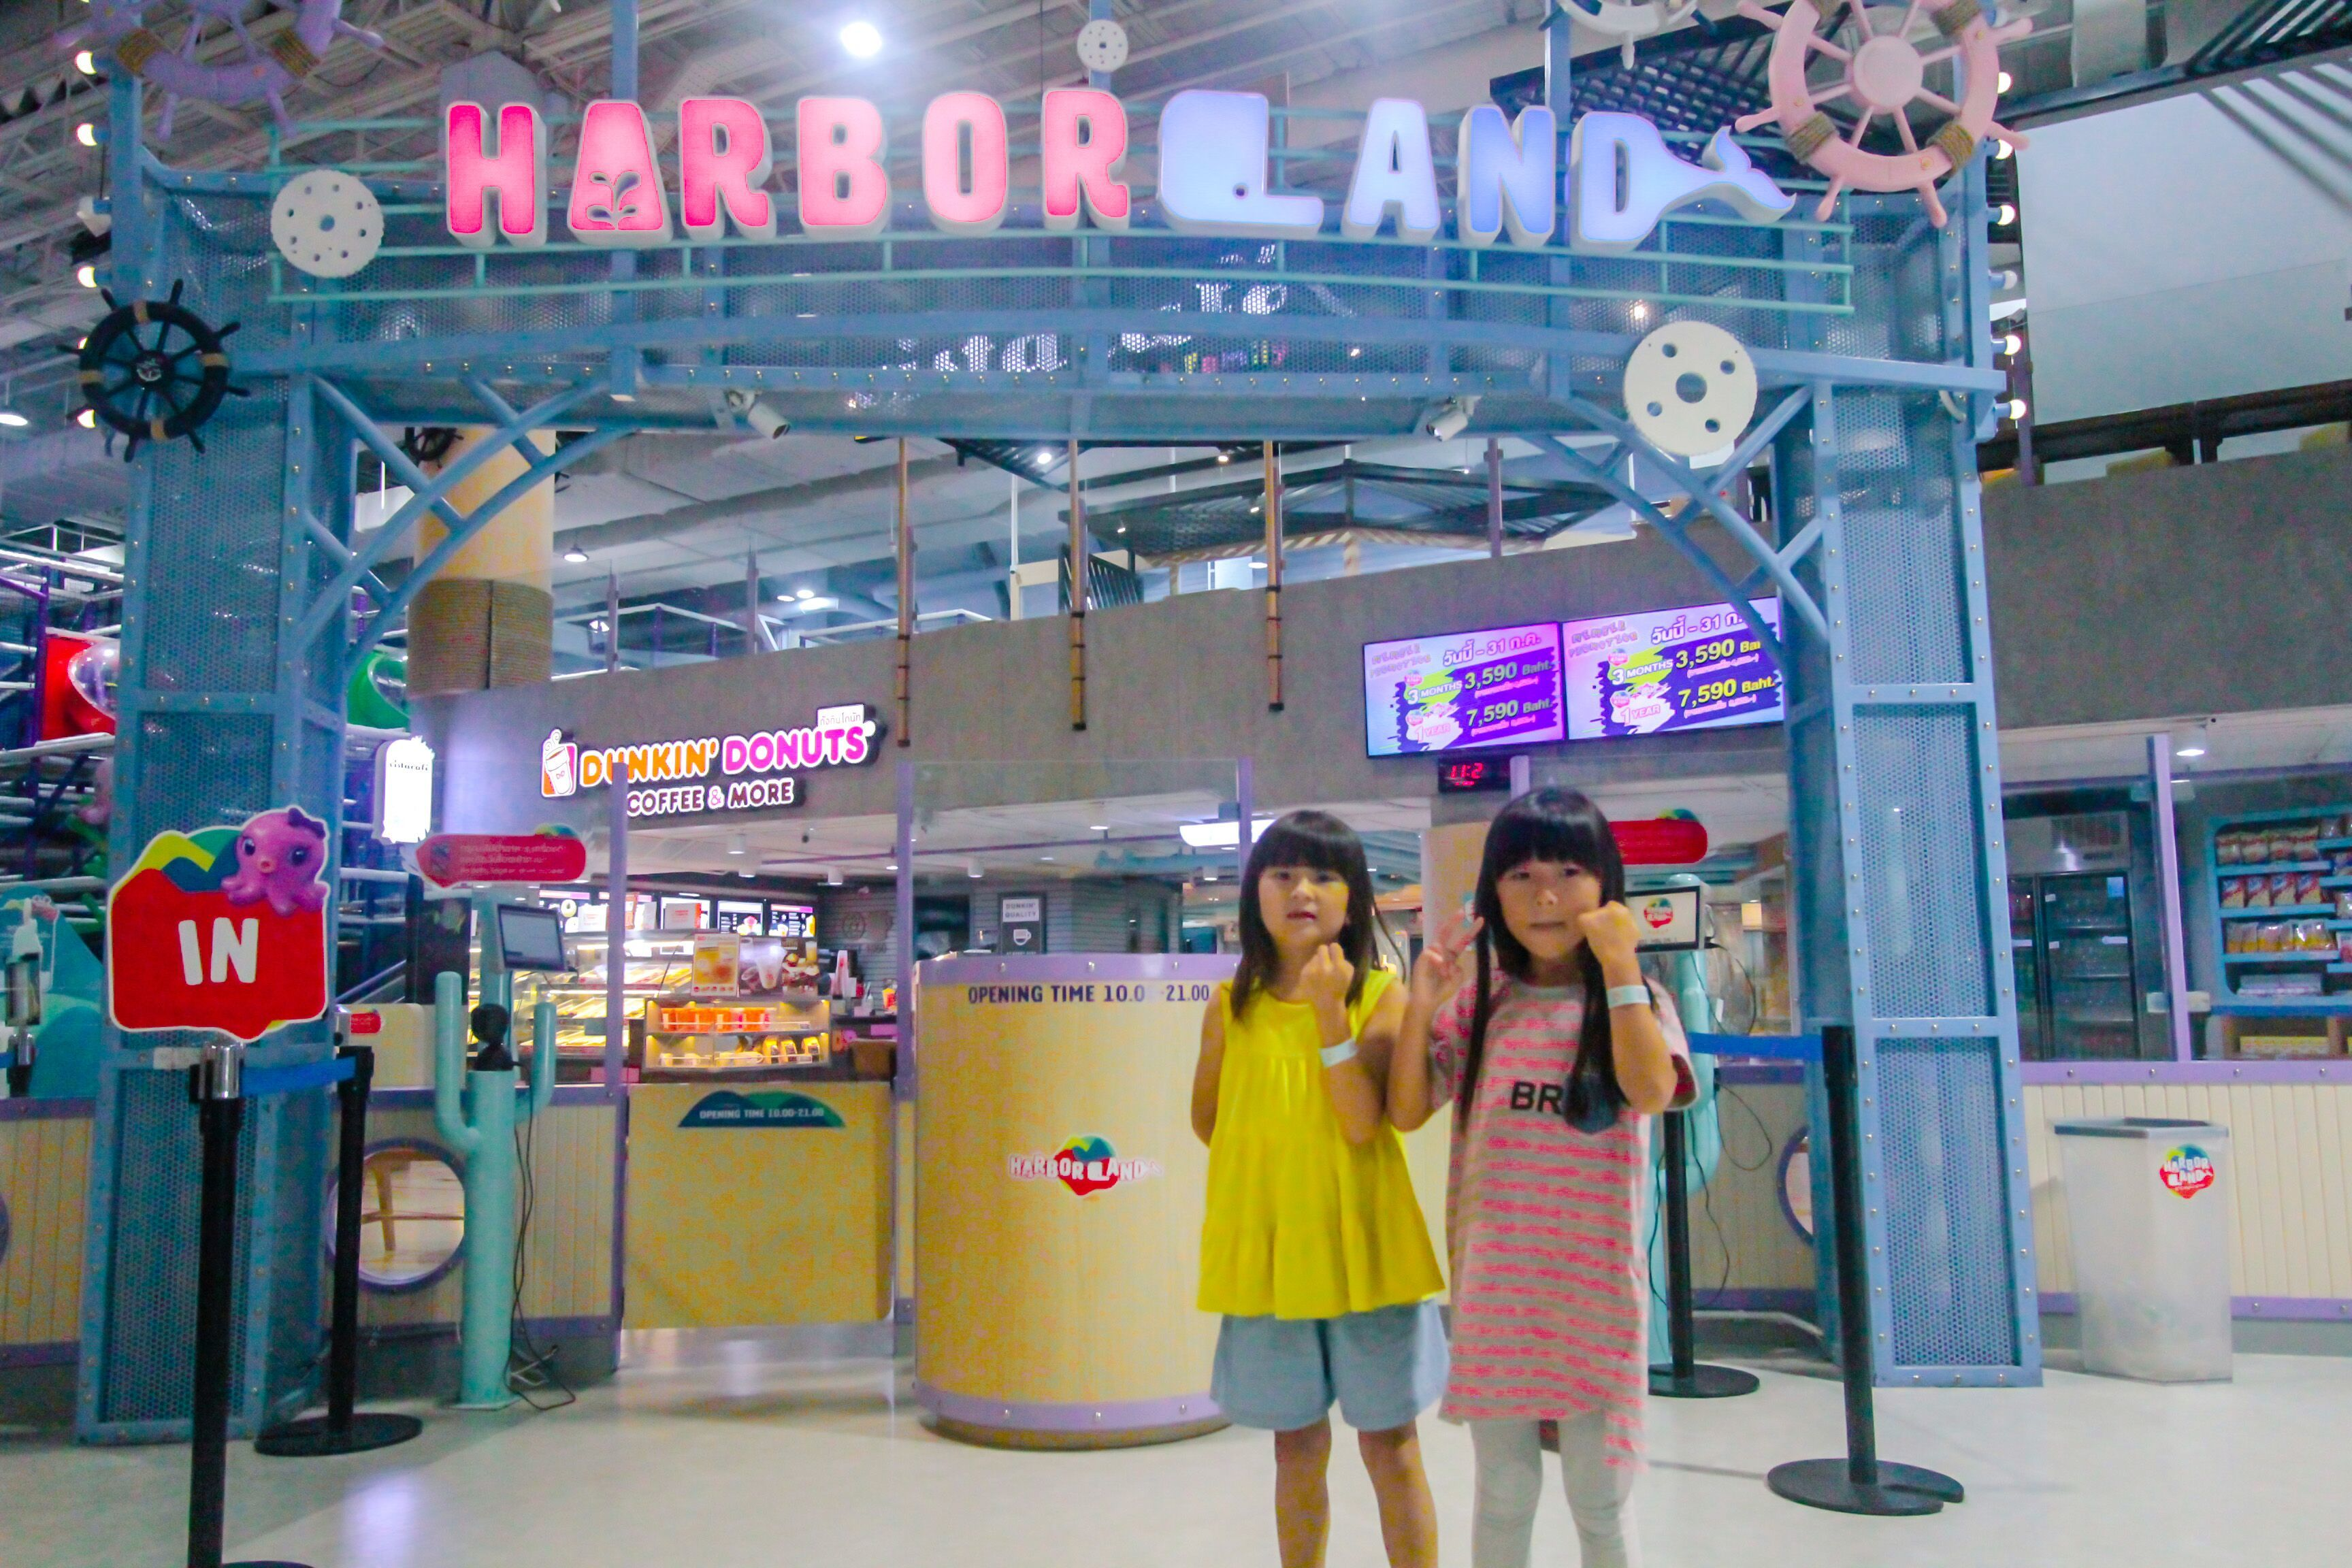 HarborLand @Fashion Island